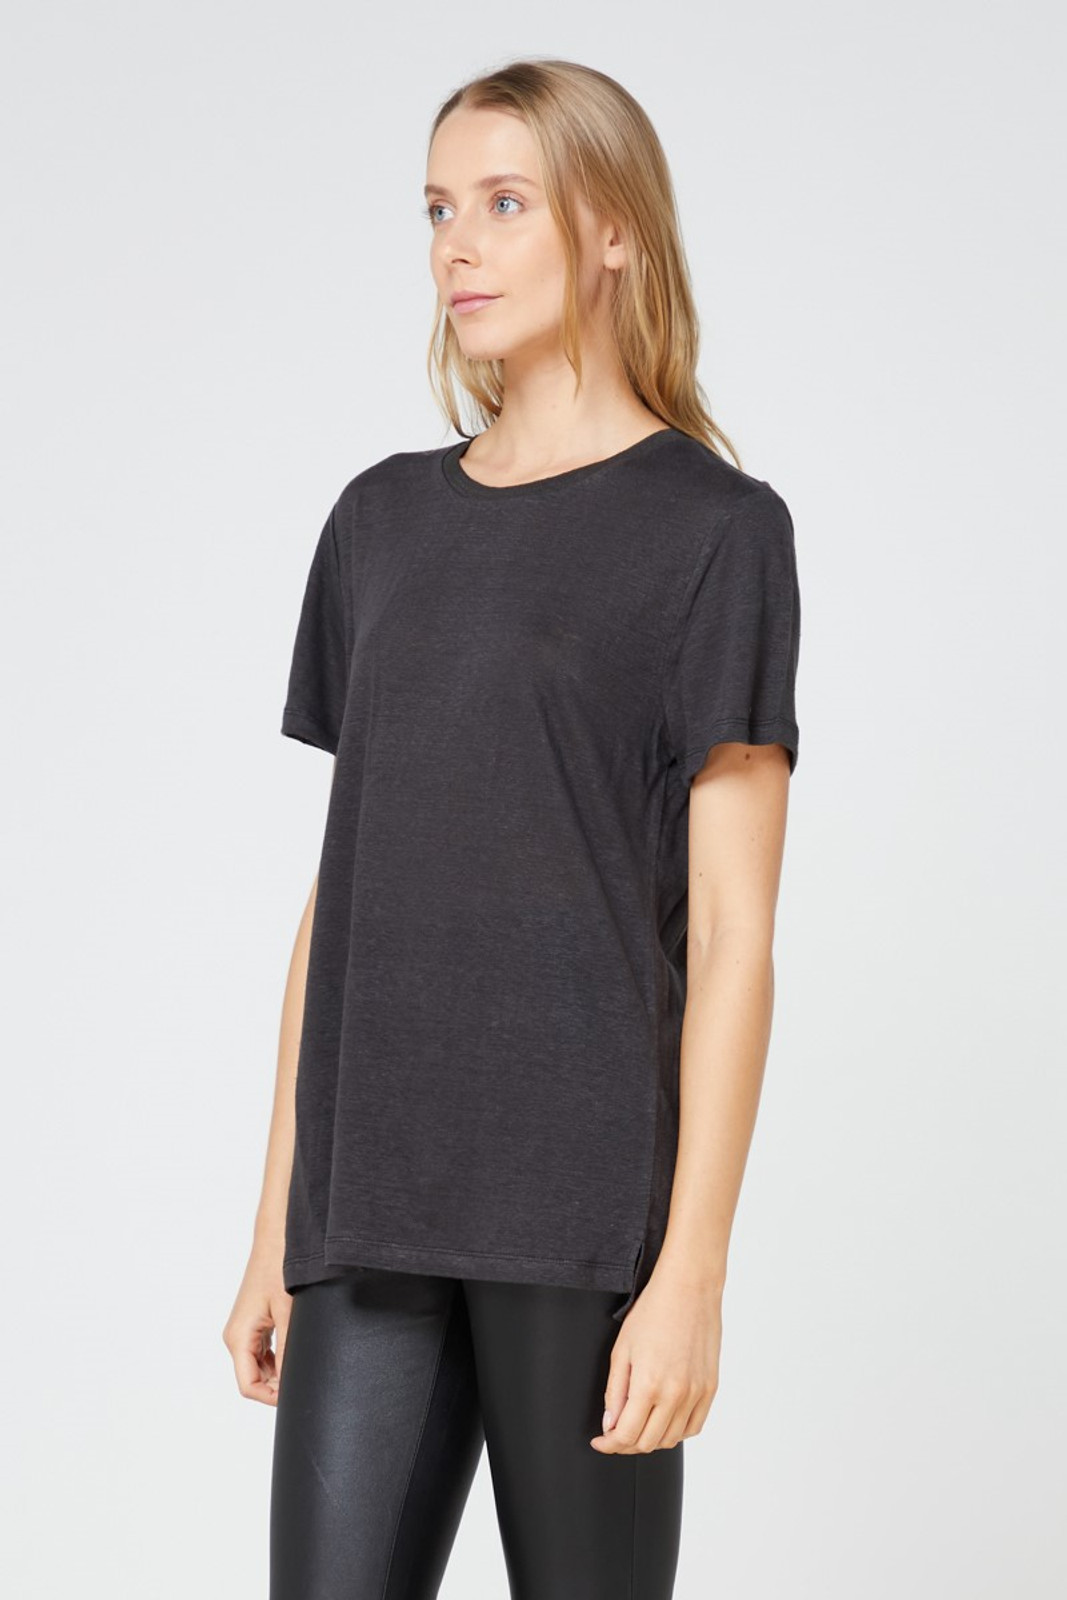 Elka Collective EC Linen Crew Neck Tee Black  6